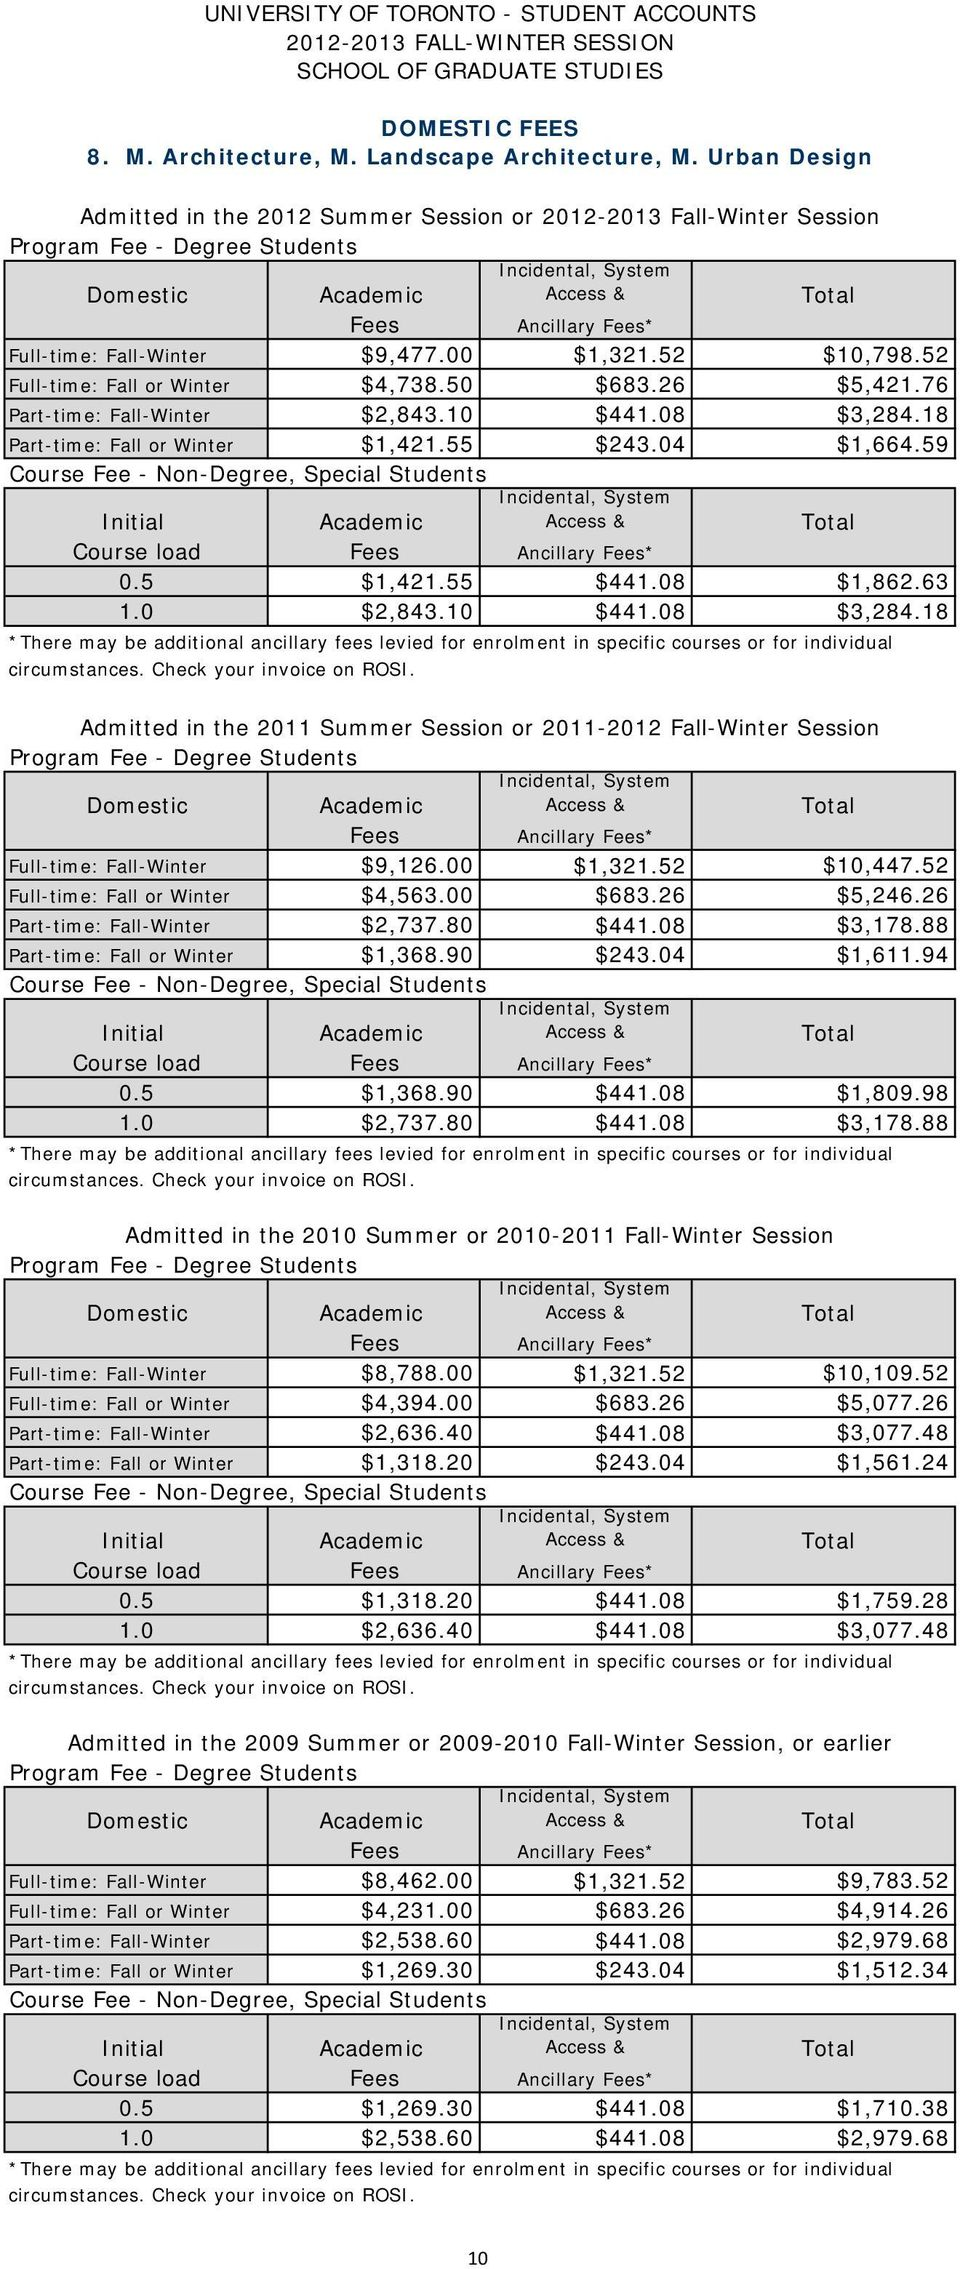 00 $1,321.52 $10,447.52 Full-time: Fall or Winter $4,563.00 $683.26 $5,246.26 Part-time: Fall-Winter $2,737.80 $441.08 $3,178.88 Part-time: Fall or Winter $1,368.90 $243.04 $1,611.94 Course load 0.